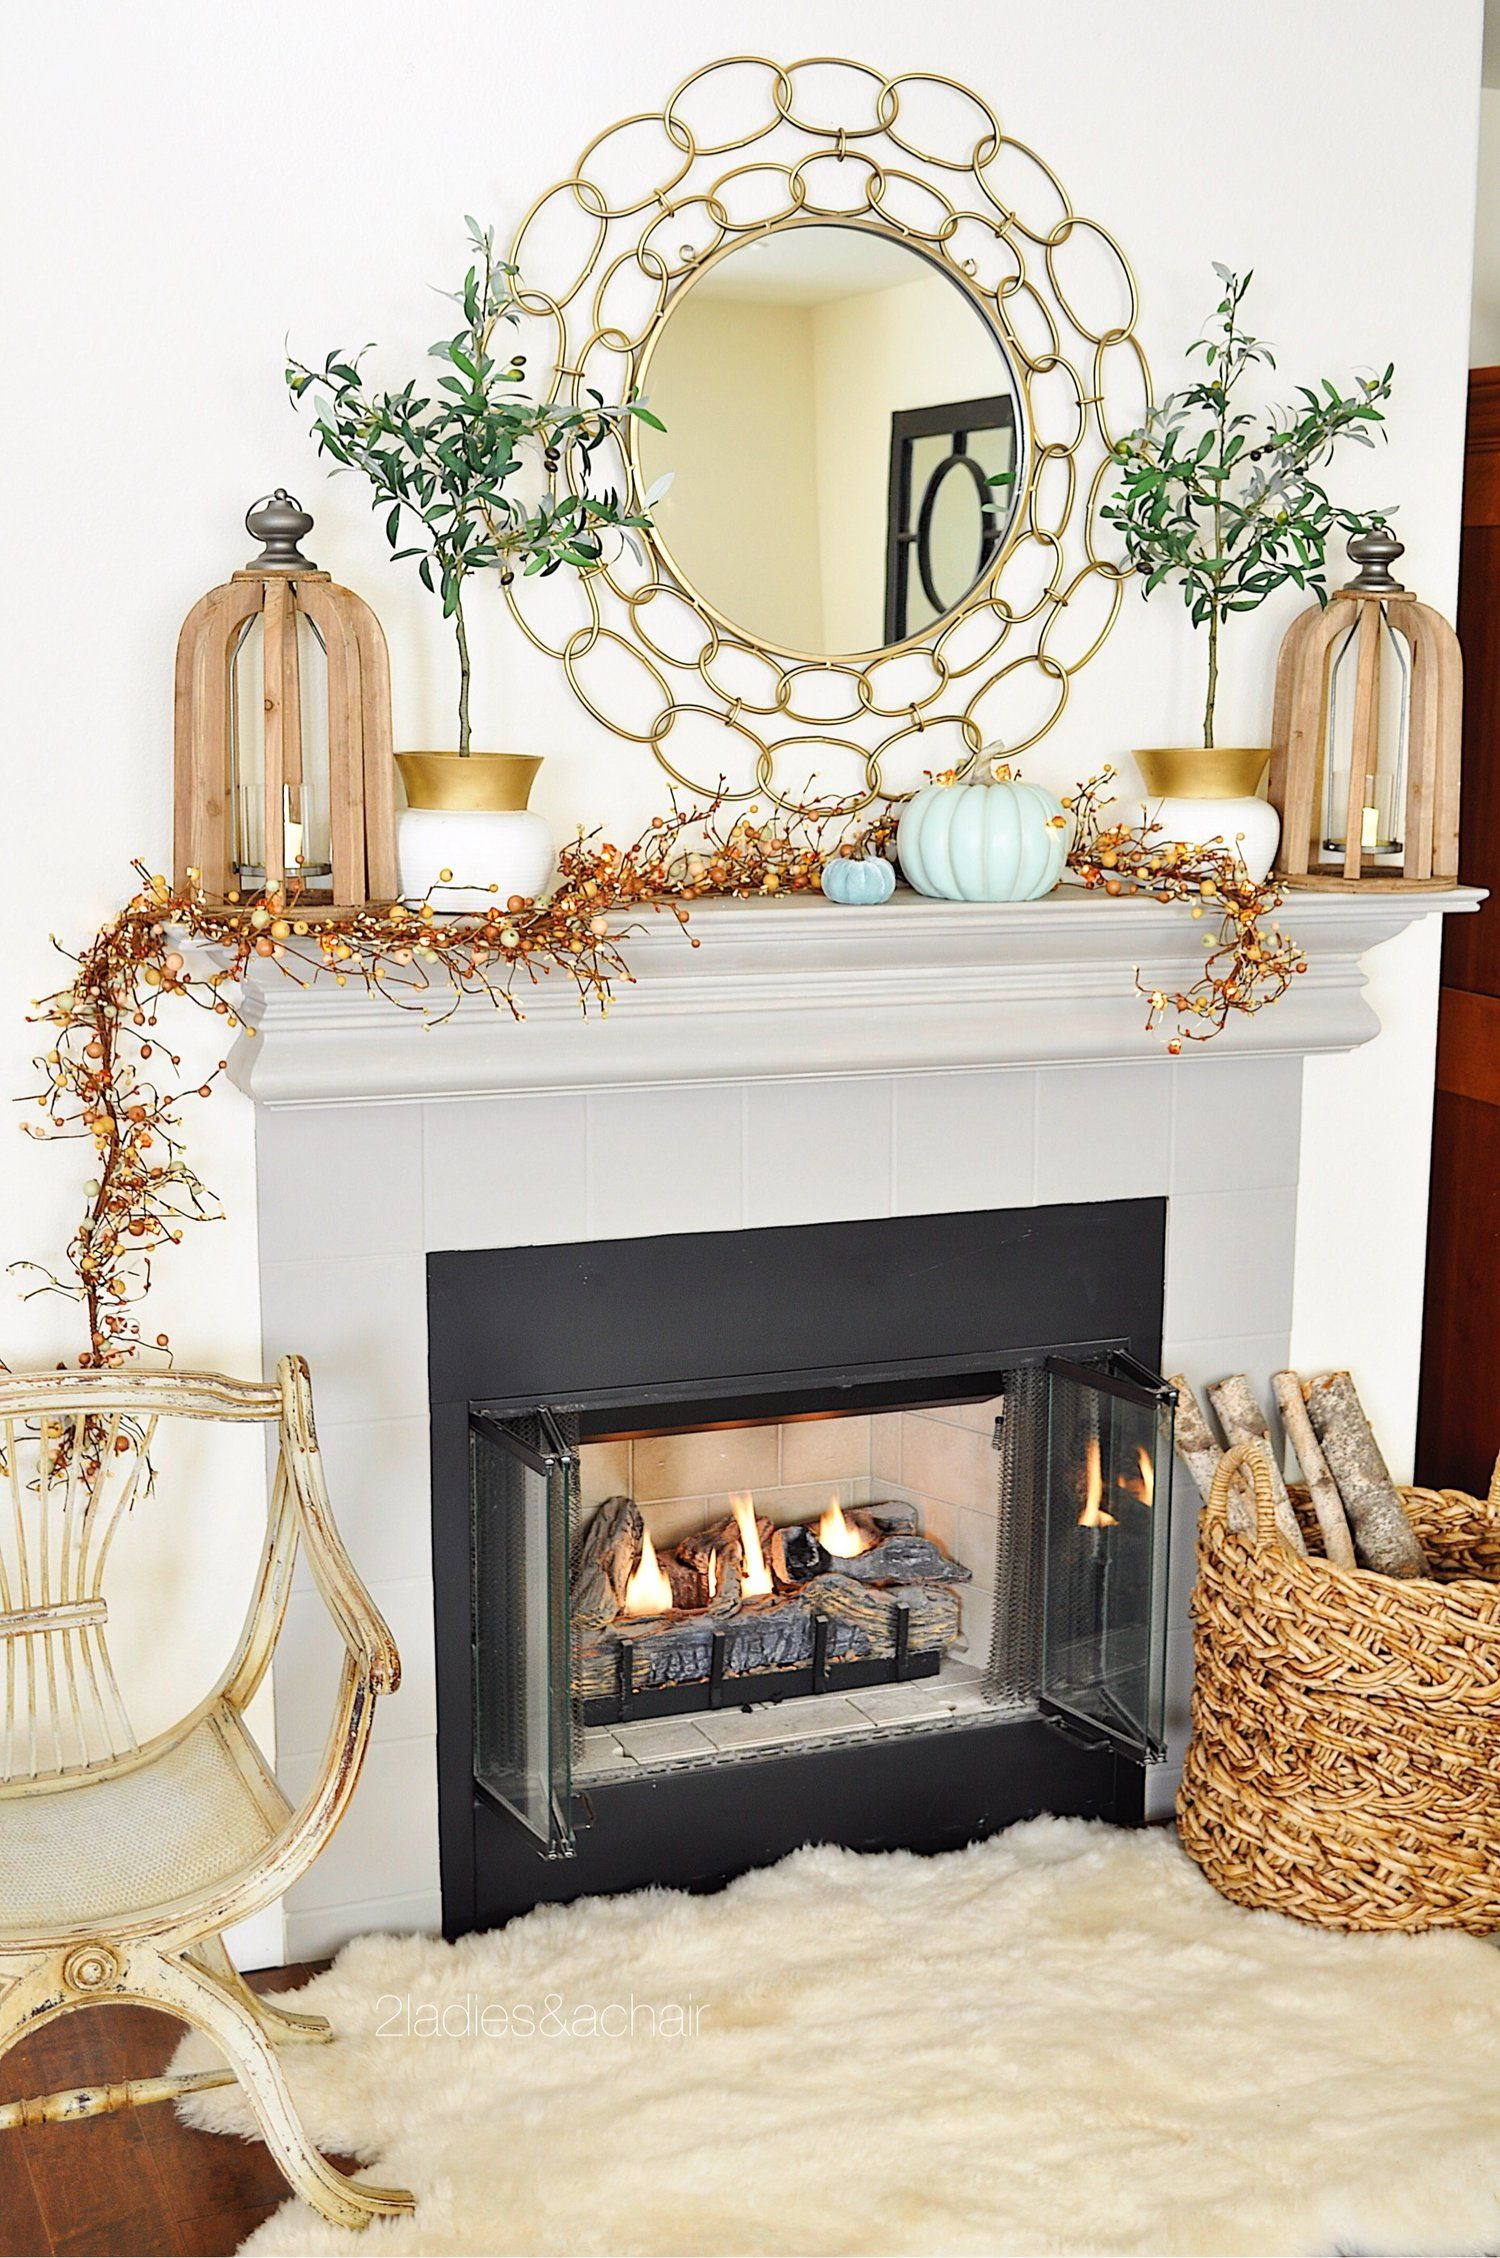 How To Decorate An Amazing Fall Mantel